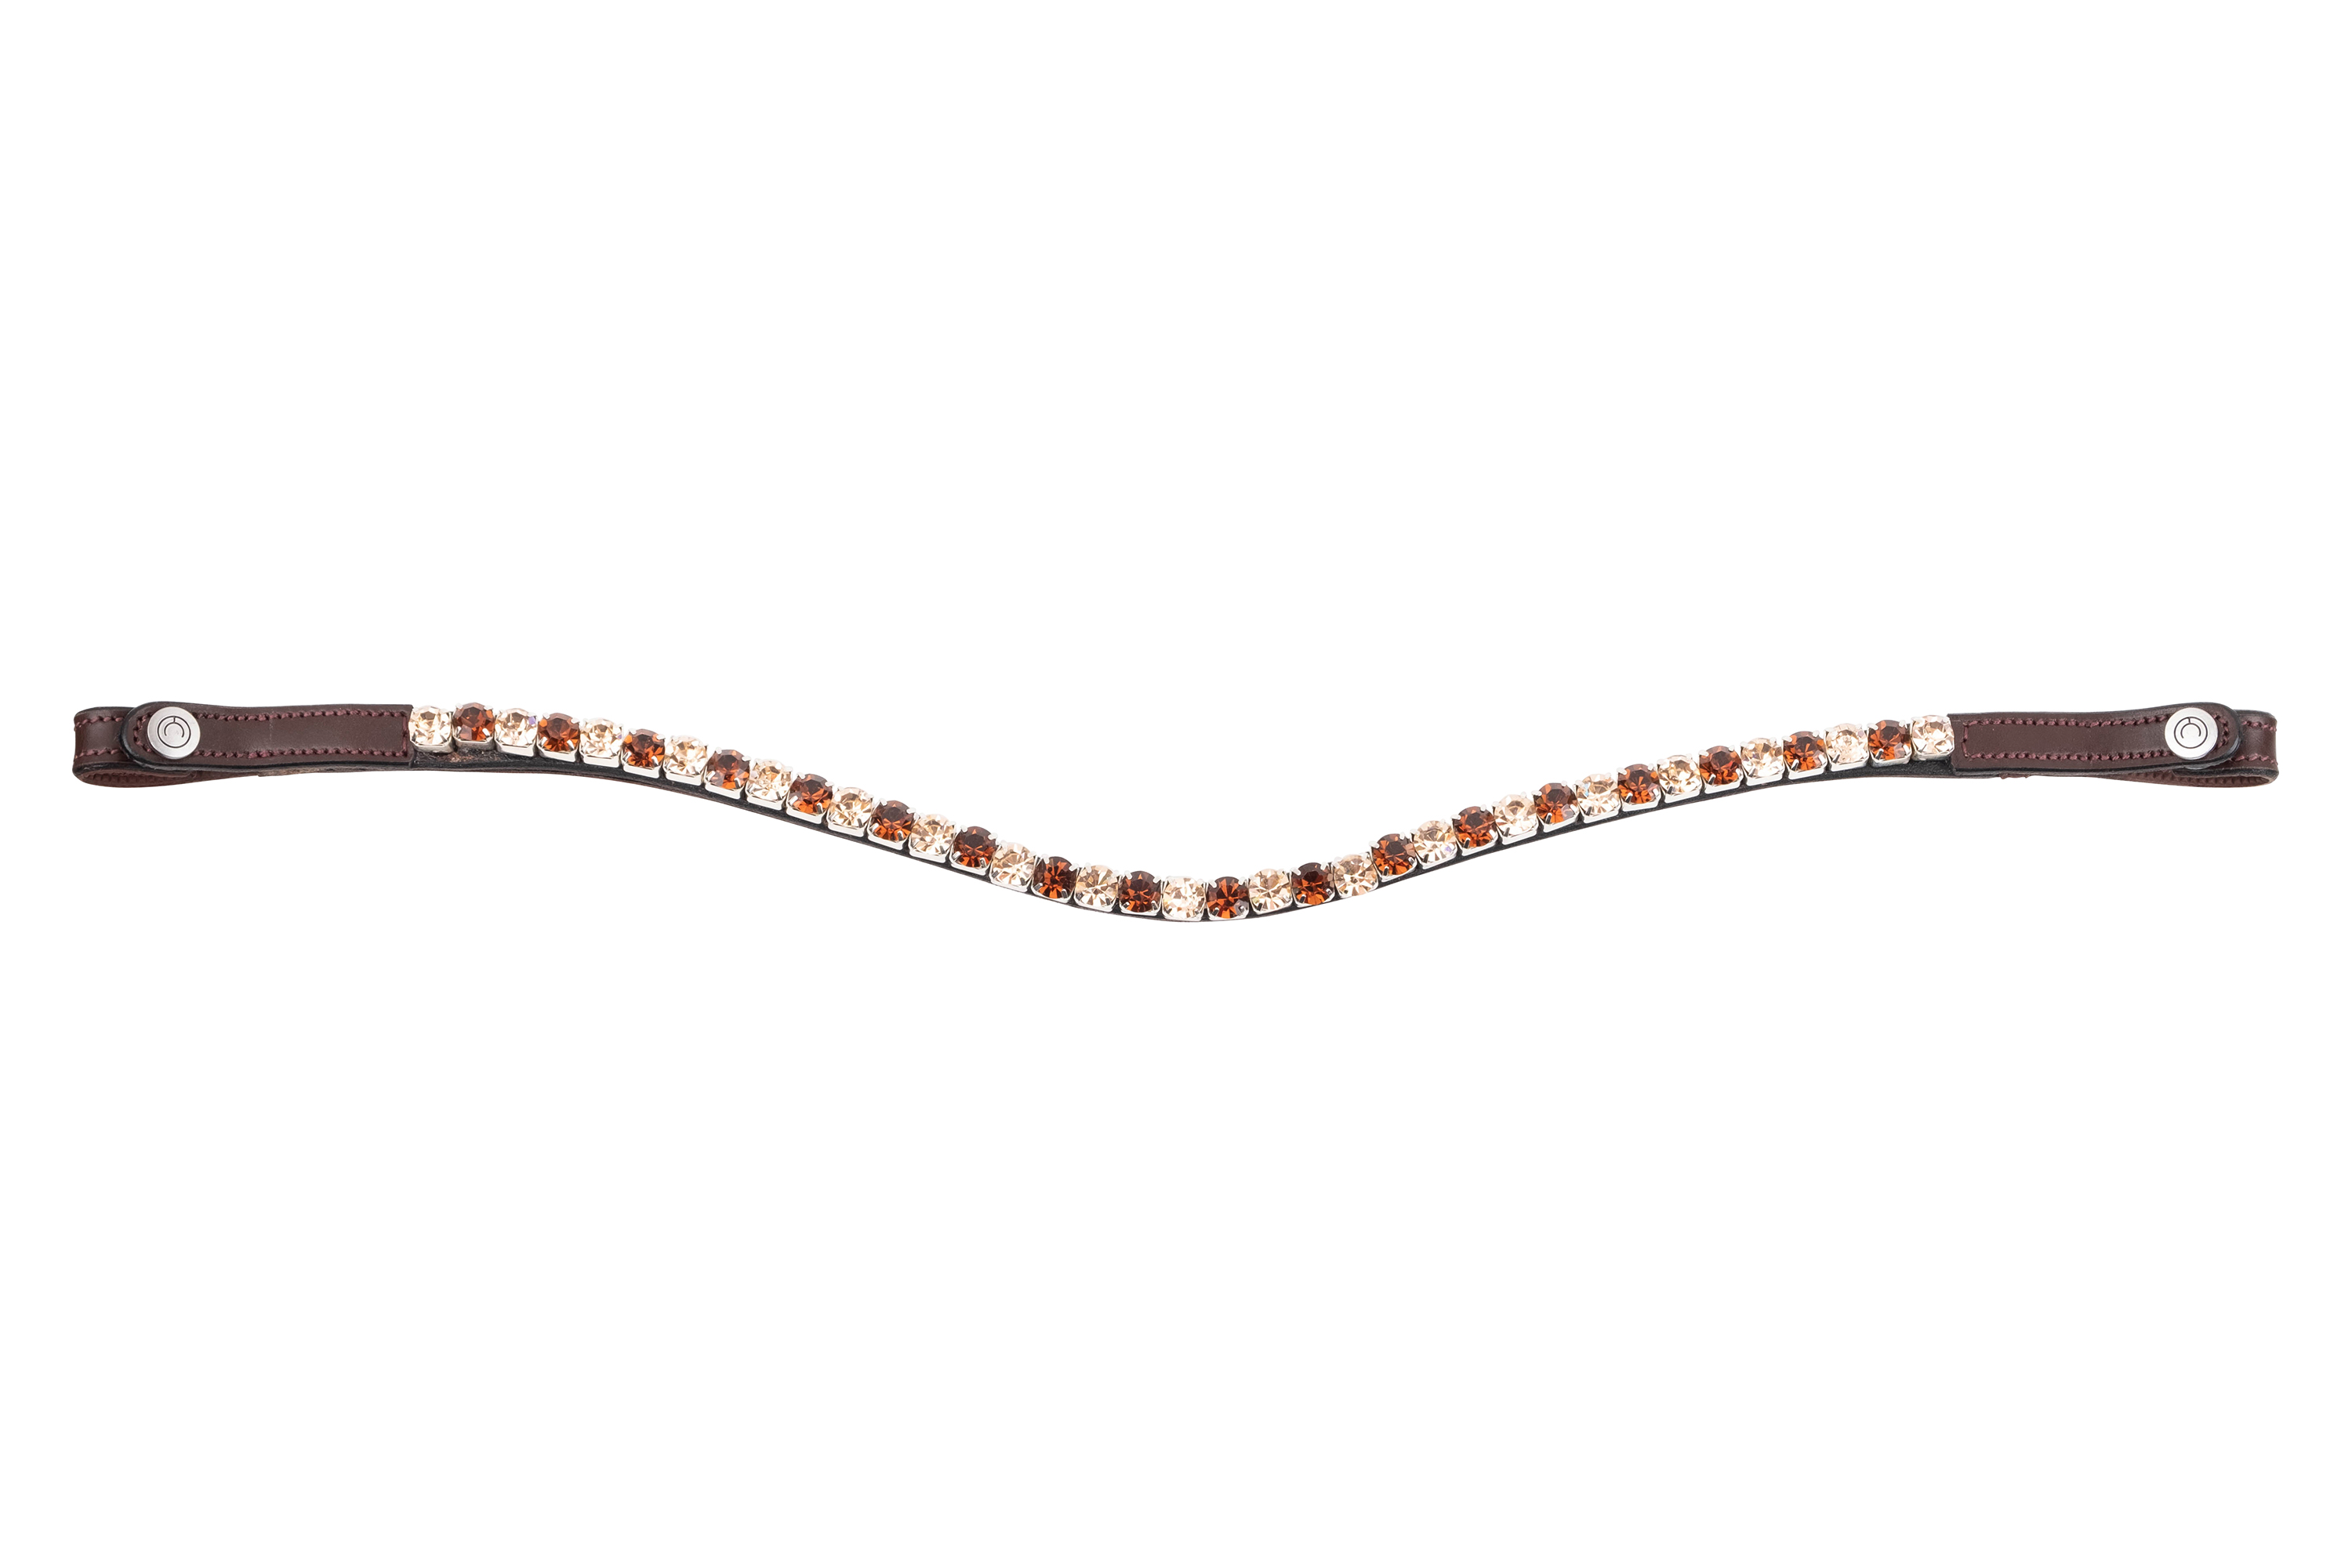 64222-8-Mighty-Browband-Peach-Brown.jpg